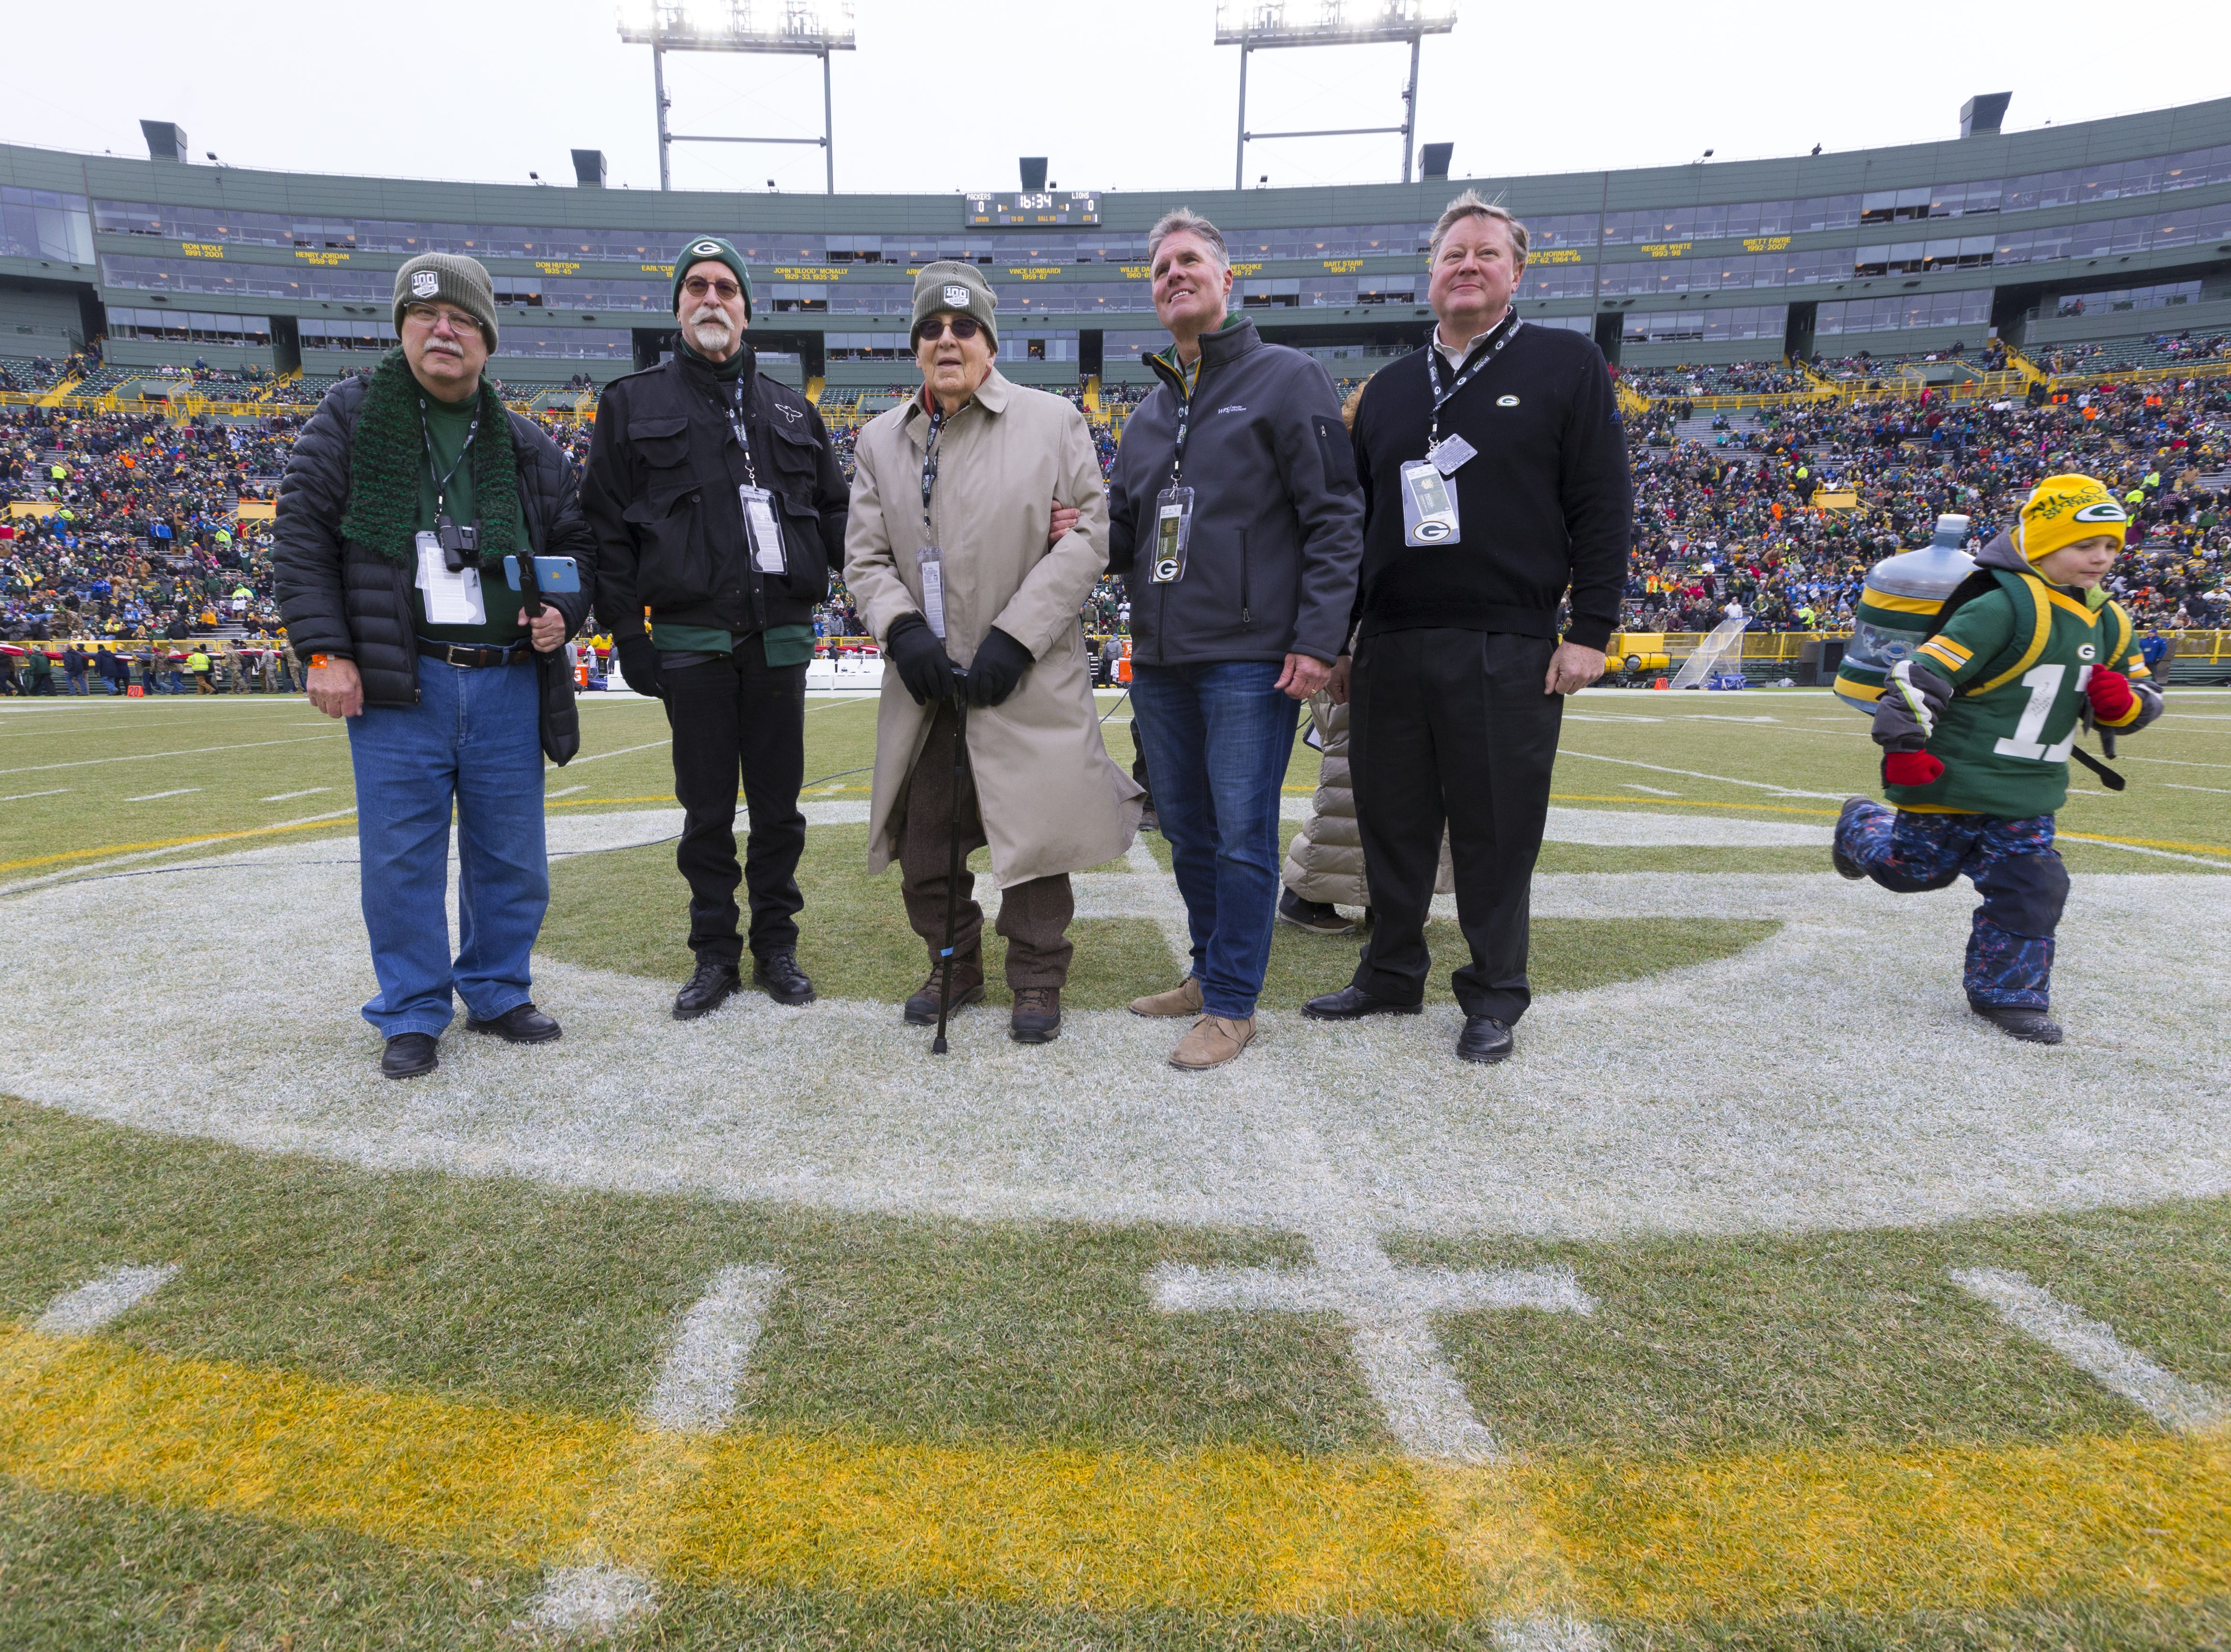 Eugene Nordby (center), who served as a military surgeon during World War II, is honored at midfield before the Green Bay Packers game against the Detroit Lions Sunday, December 30, 2018 at Lambeau Field in Green Bay, Wis. Nordby is the same age as the Packers - 100 years. Nordby graduated from Luther College in 1939 and earned his medical degree at UW-Madison in 1943. He served as a captain in the U.S. Army Medical Corps, 1944-46 and then practiced as an orthopedic surgeon until 1981. Second from left is Nordby's son, Jon.  MARK HOFFMAN/MILWAUKEE JOURNAL SENTINEL